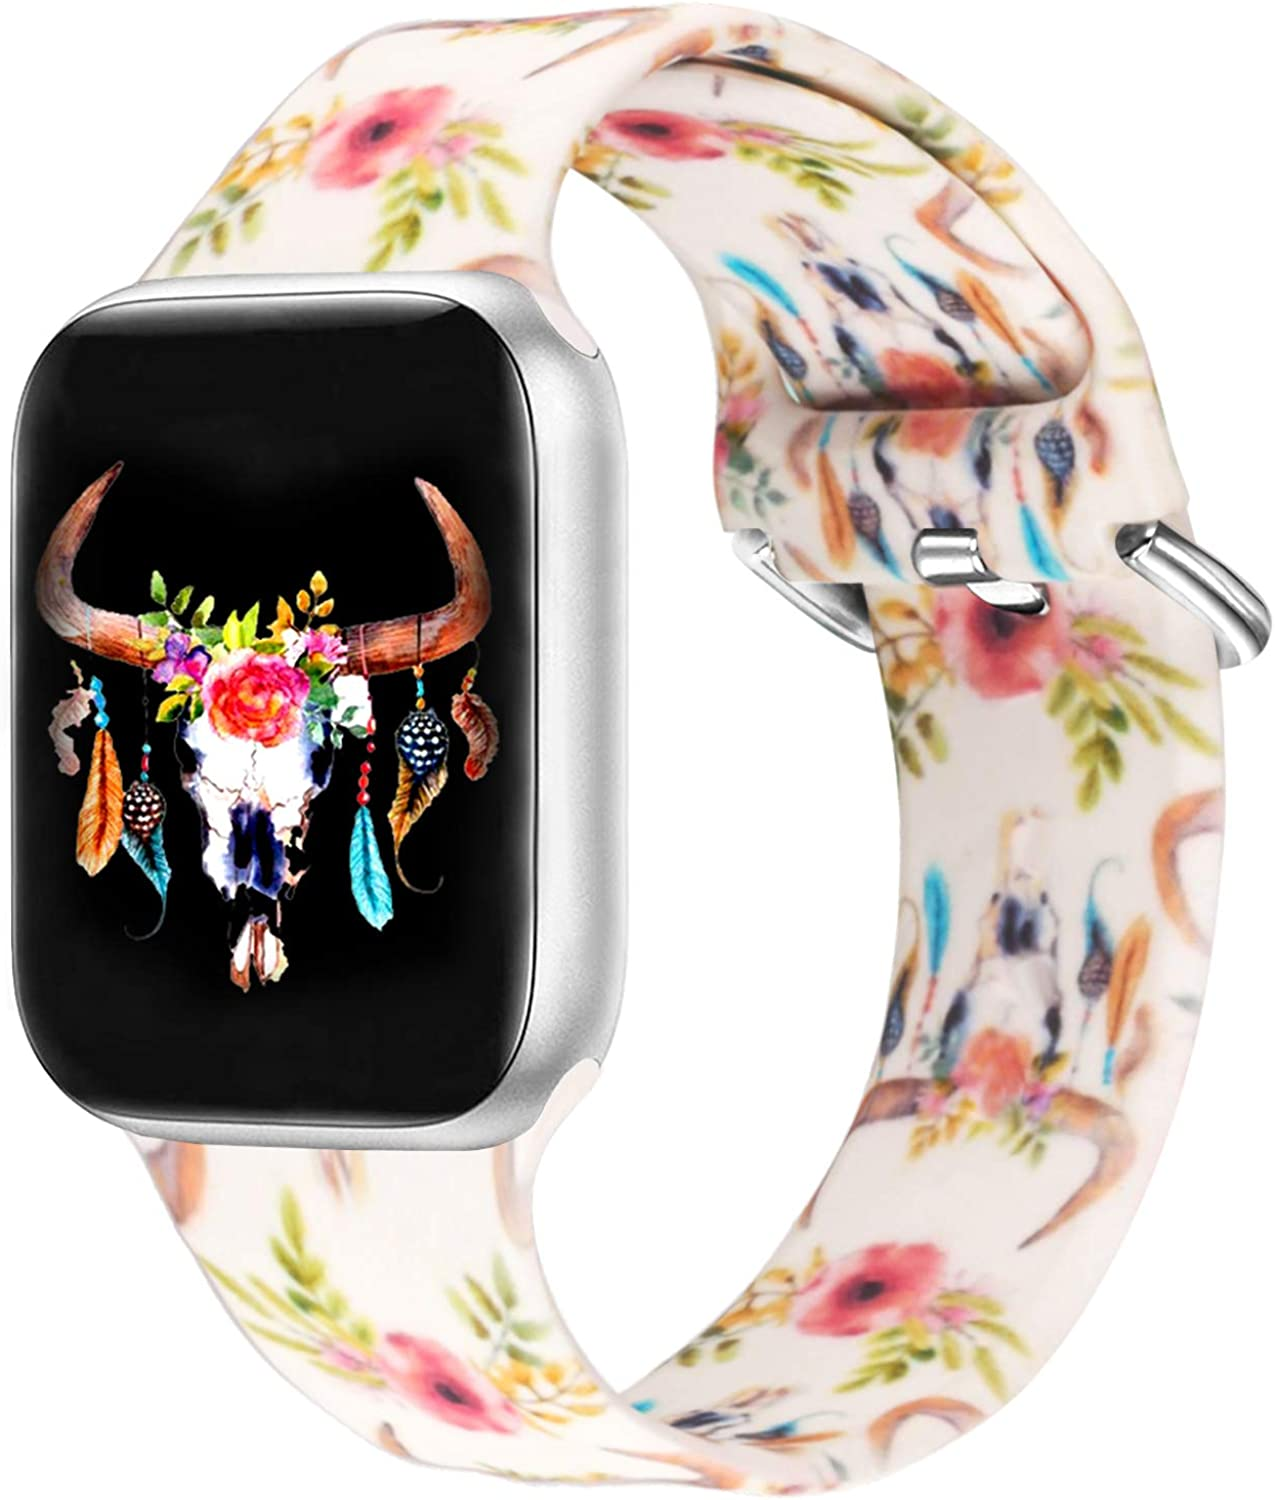 Idealiveny Sport Band Compatible with Apple Watch Band 38mm 40mm 42mm 44mm Women Silicone Replacement for Iwatch Series 5 4 3 2 1 Double Side Pattern Soft Wristband